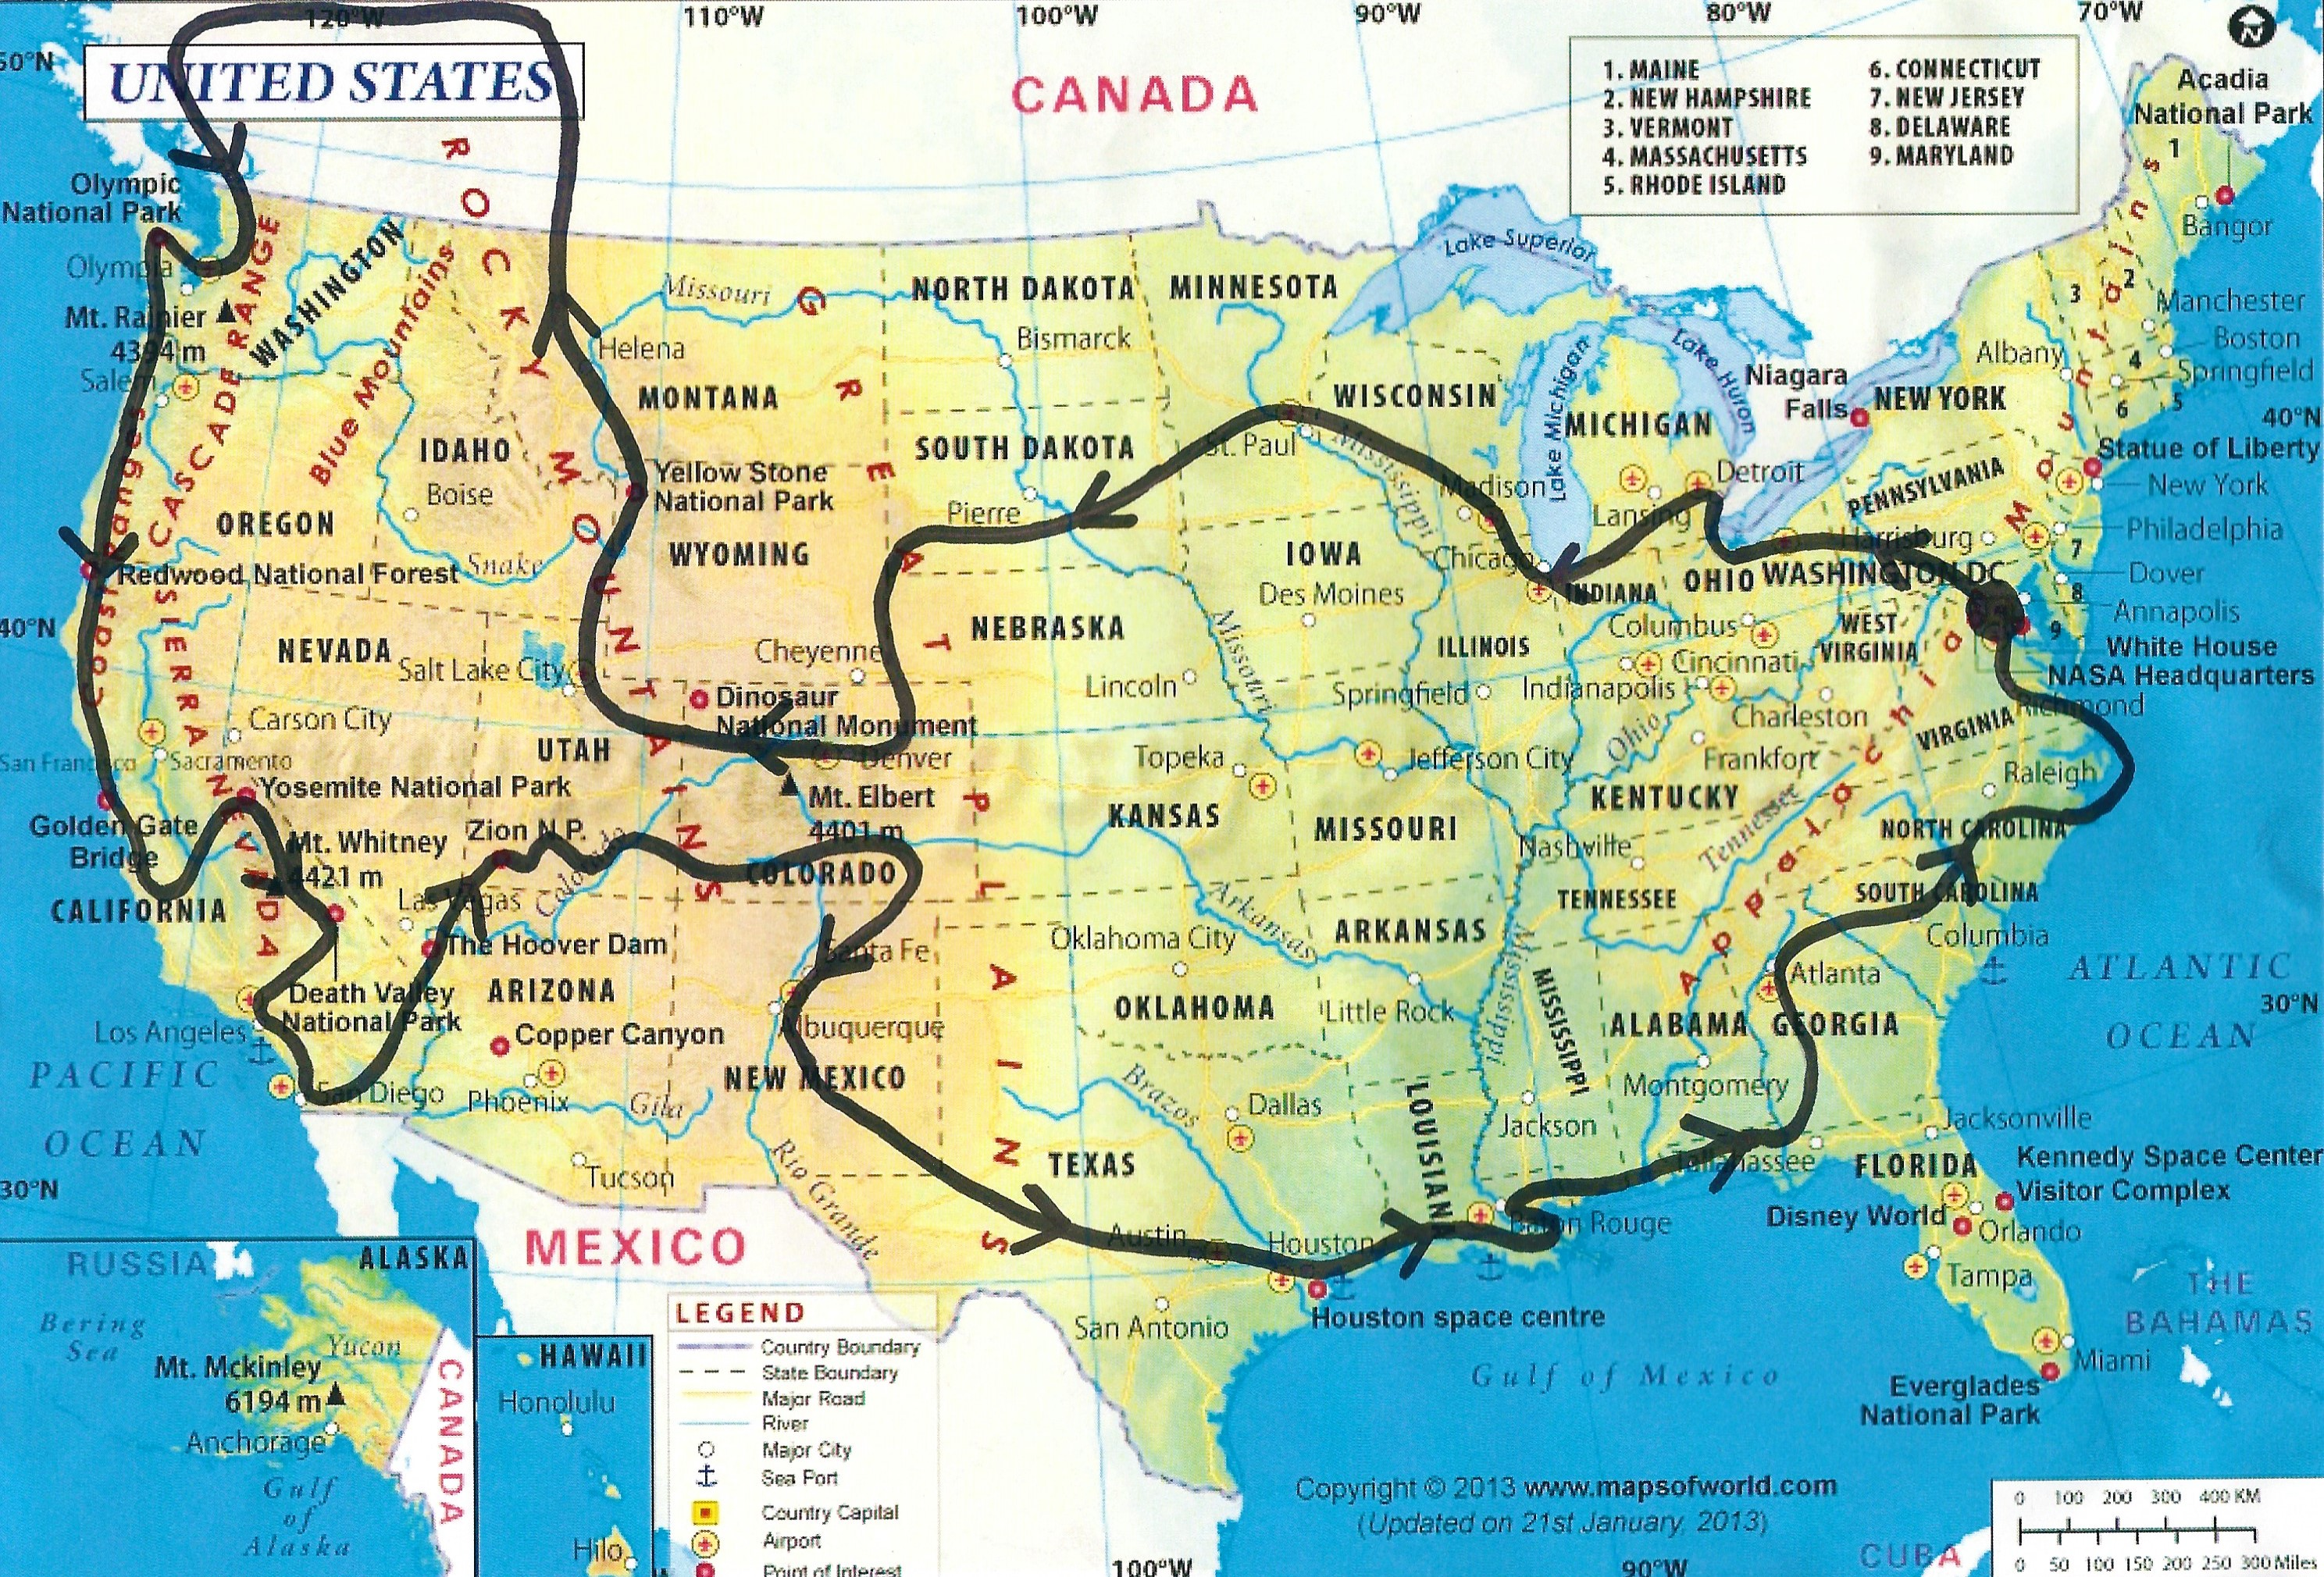 Longest Rivers In USA Test Your Geography Knowledge USA Rivers - Us 90 road mississippi map